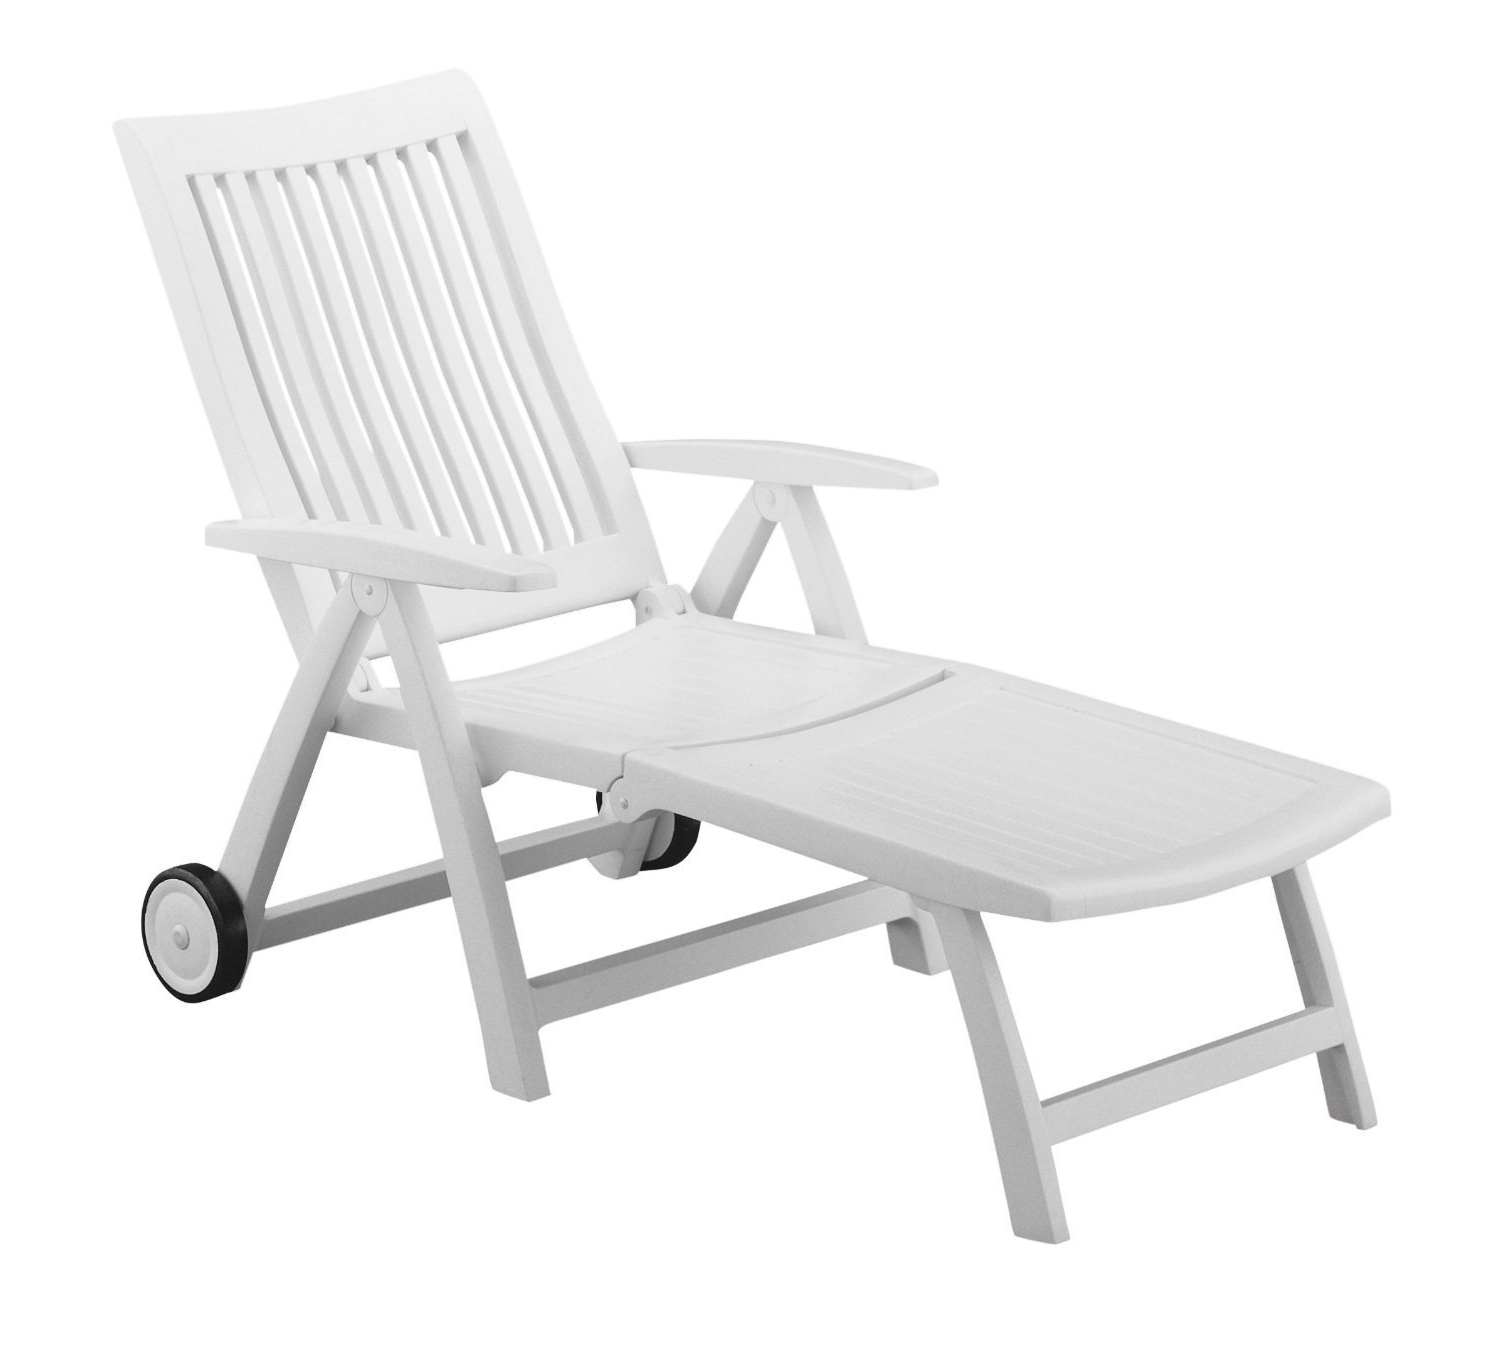 Popular Amazon : Roma Folding Lounger In White Resin : Patio Lounge Intended For Kettler Chaise Lounge Chairs (View 13 of 15)